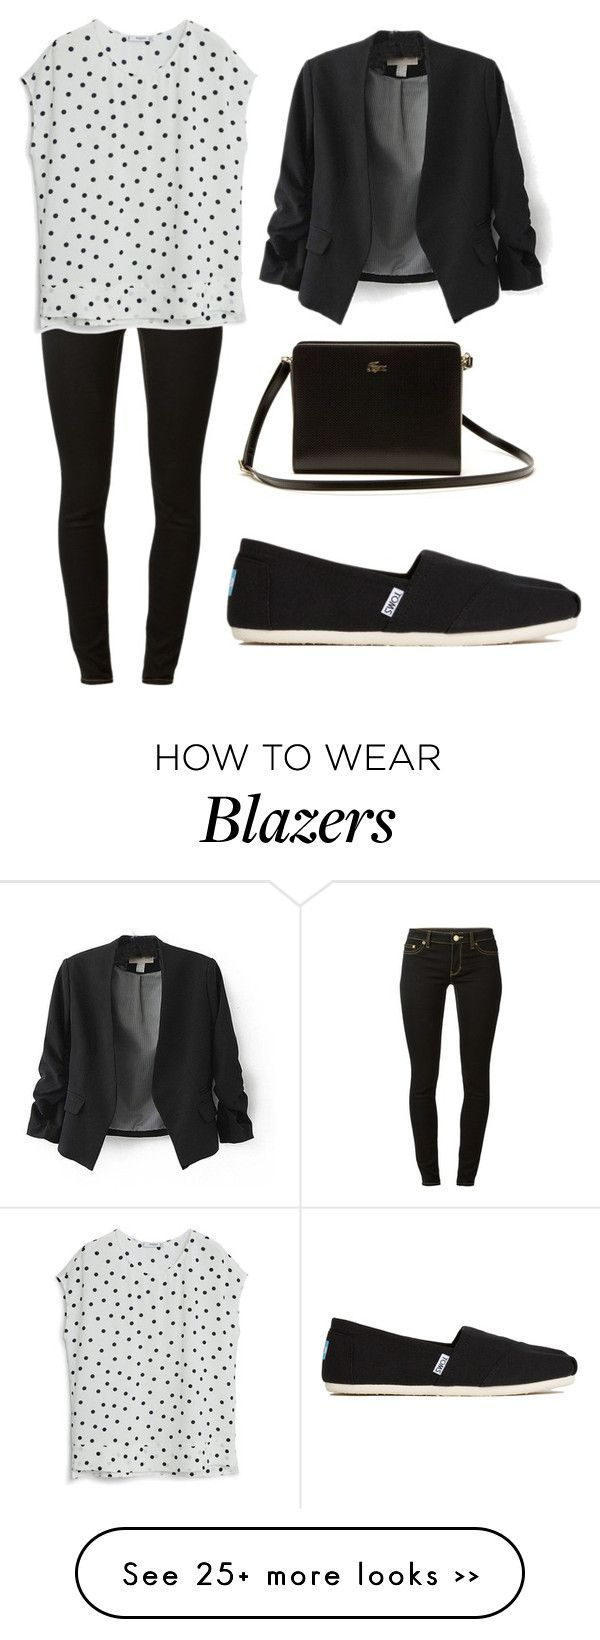 """Black Blazer Outfit"" by fashiontrendsetterforever on Polyvore"